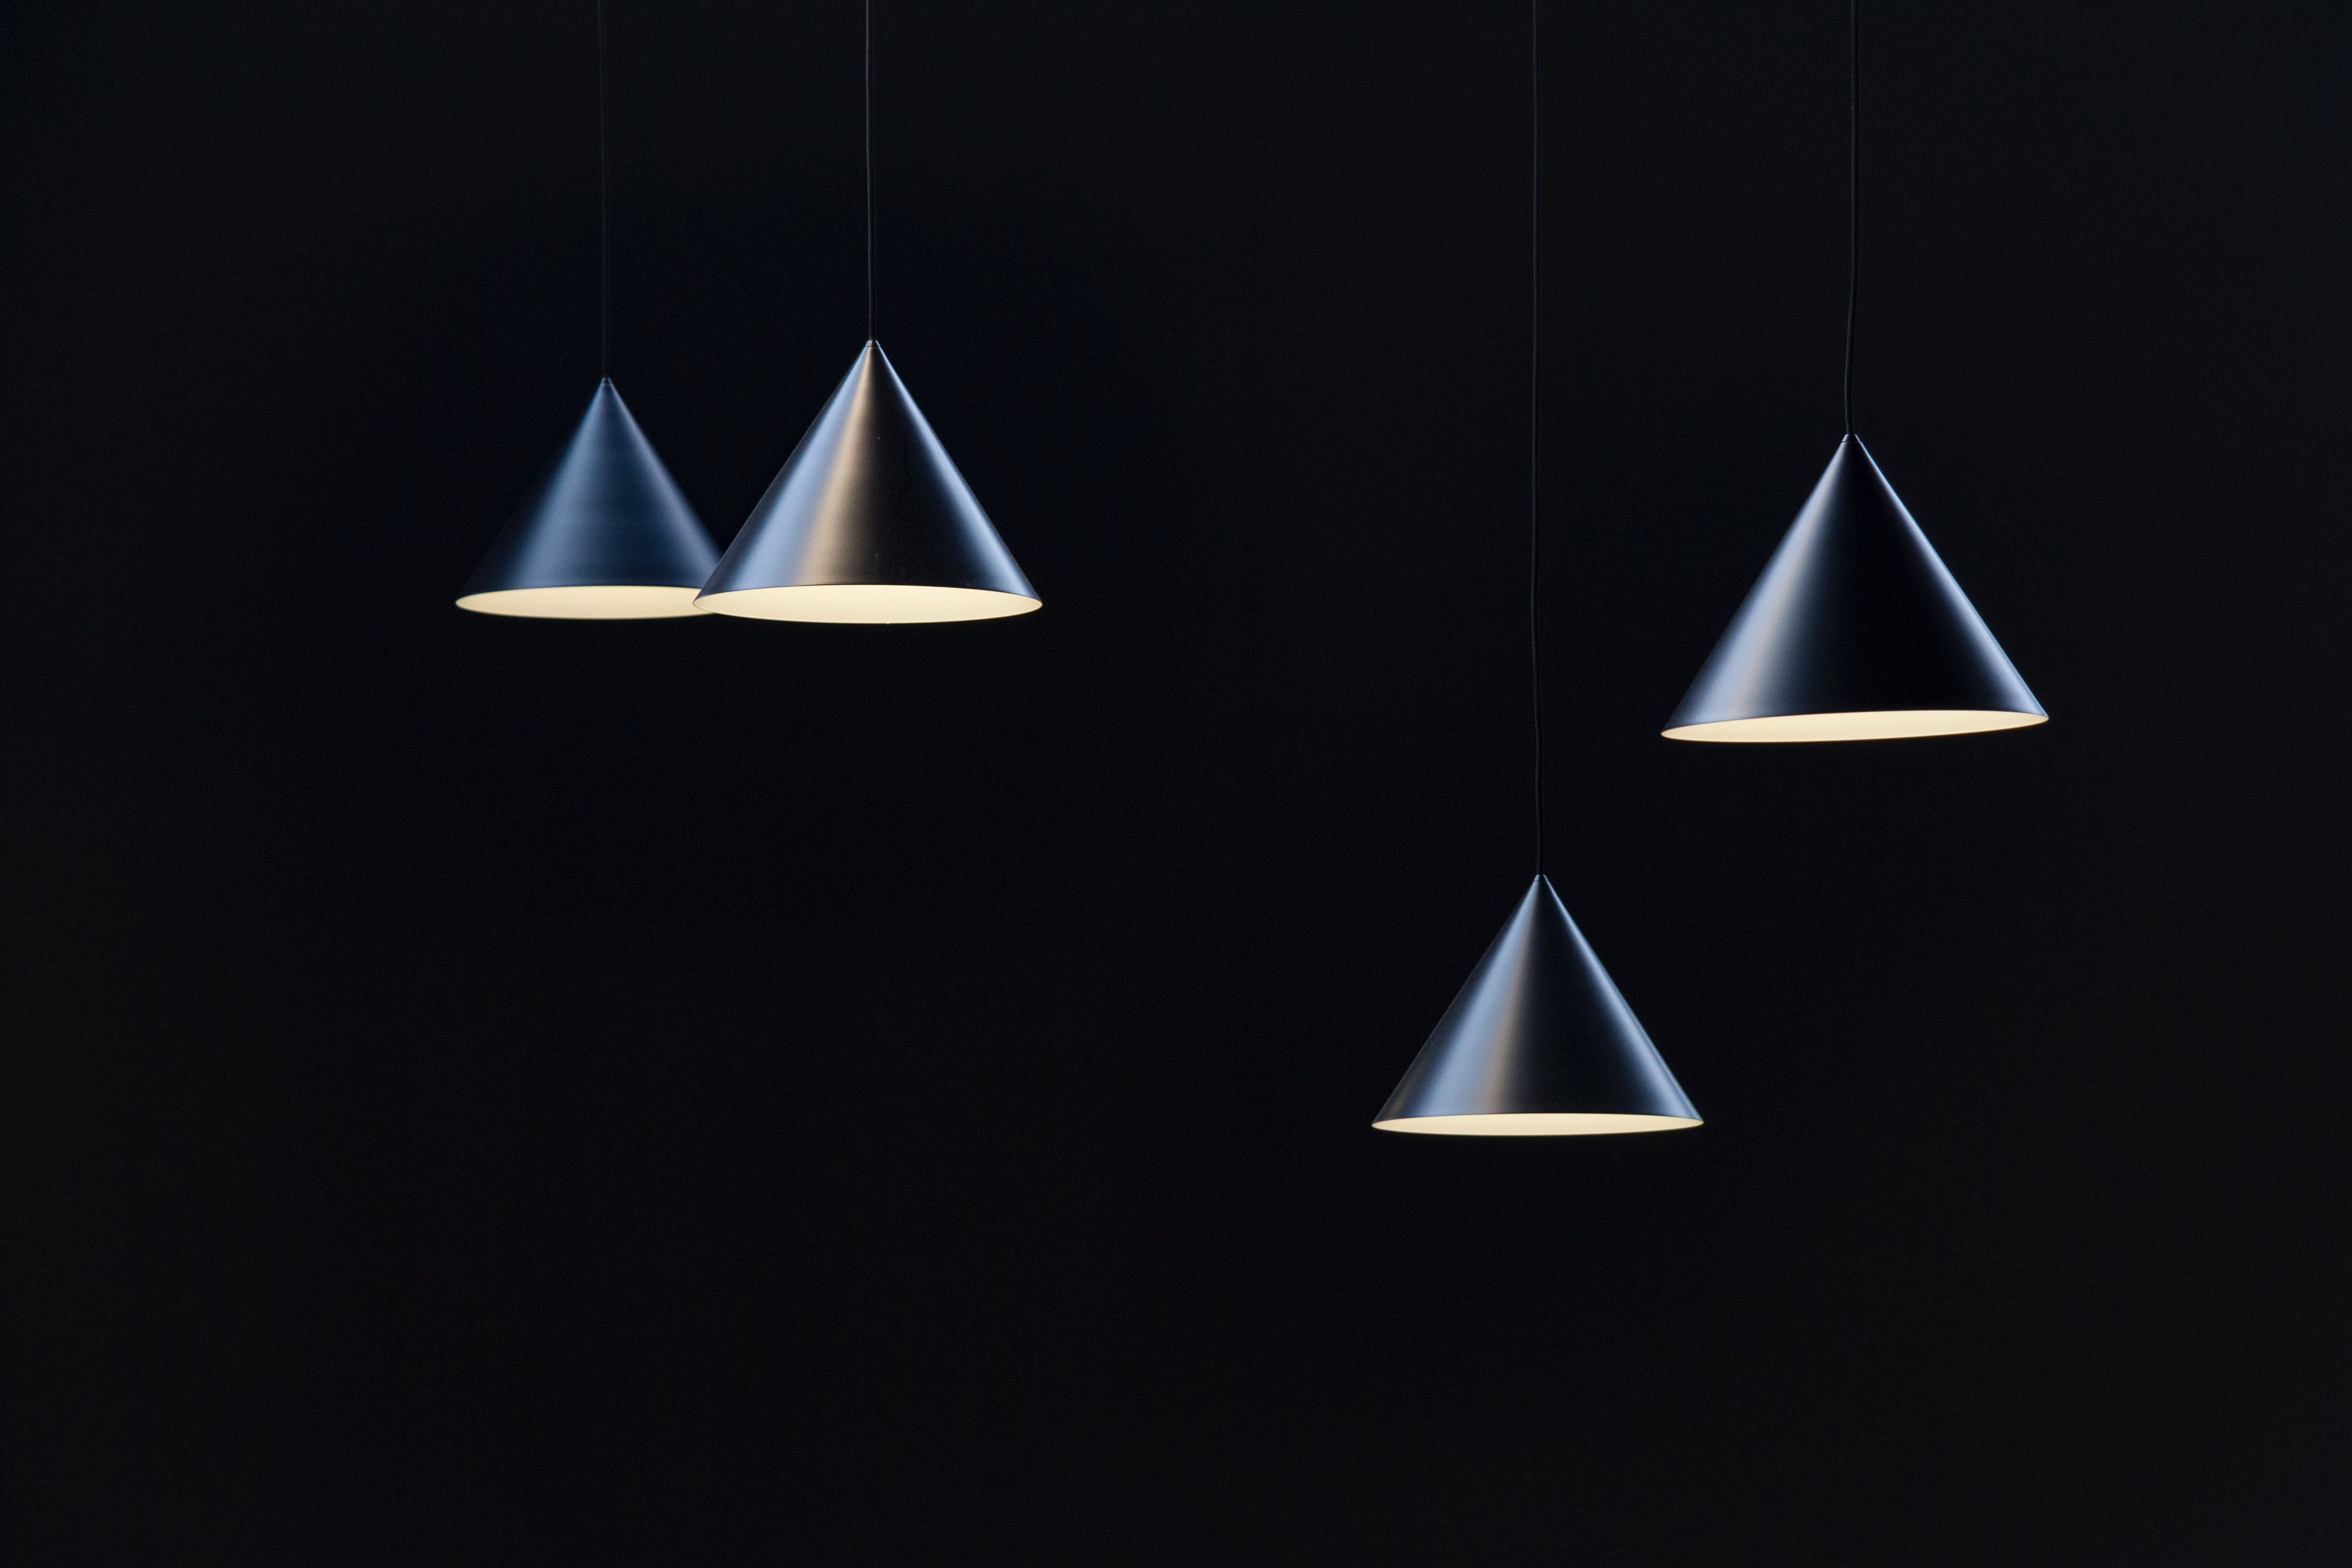 We Picked Out 5 Of Our Absolute Favourite Contemporary Lights That For Us At Holy Trinity Have Redefined Lighting Design Modernes Beleuchtungsdesign Design